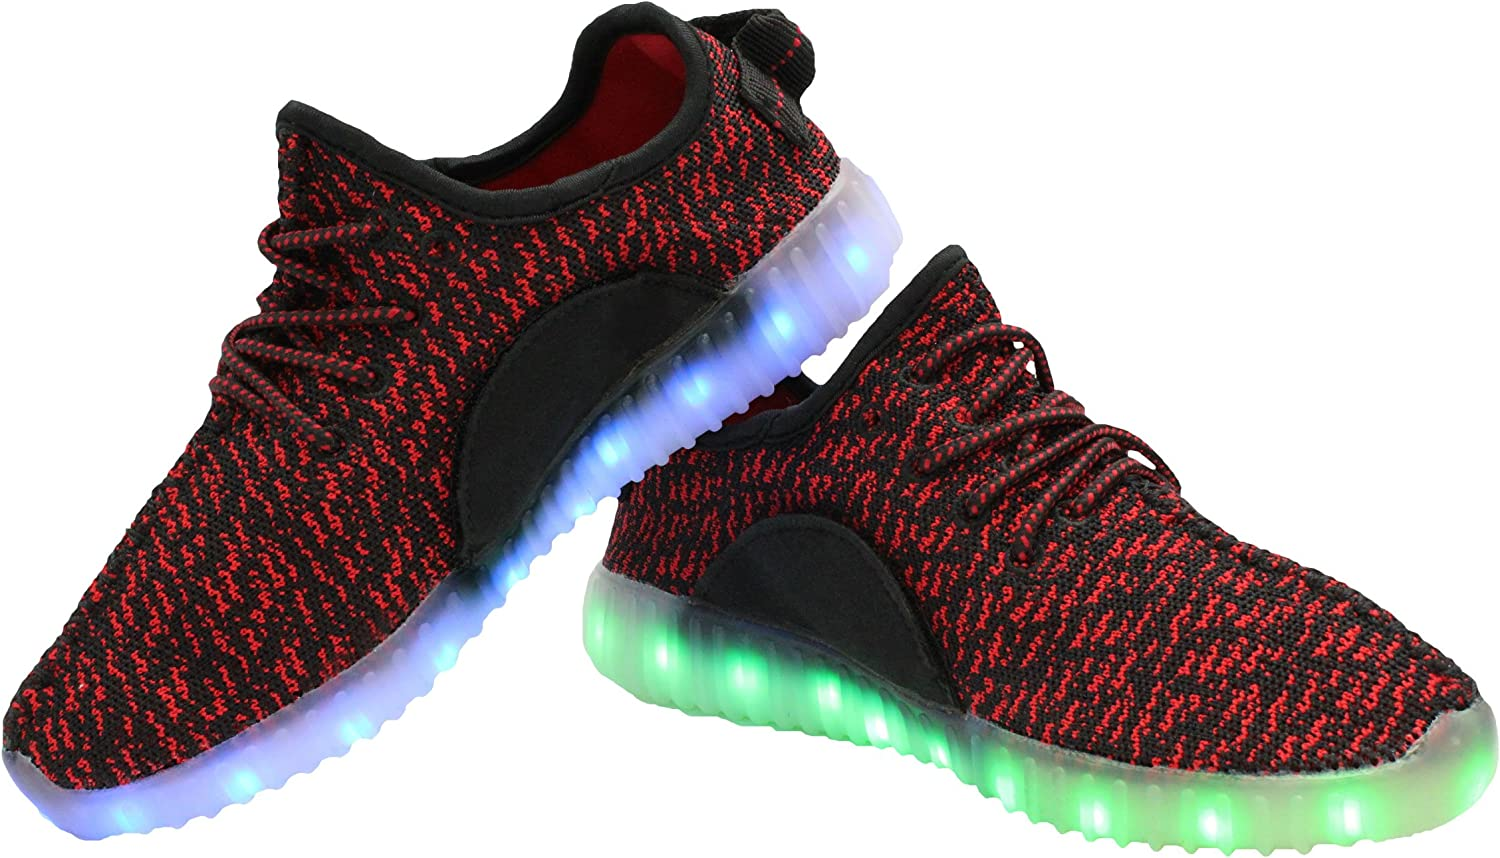 Transformania Toys Galaxy LED Shoes Light Up USB Charging Low Top Knit Light Up Sneakers